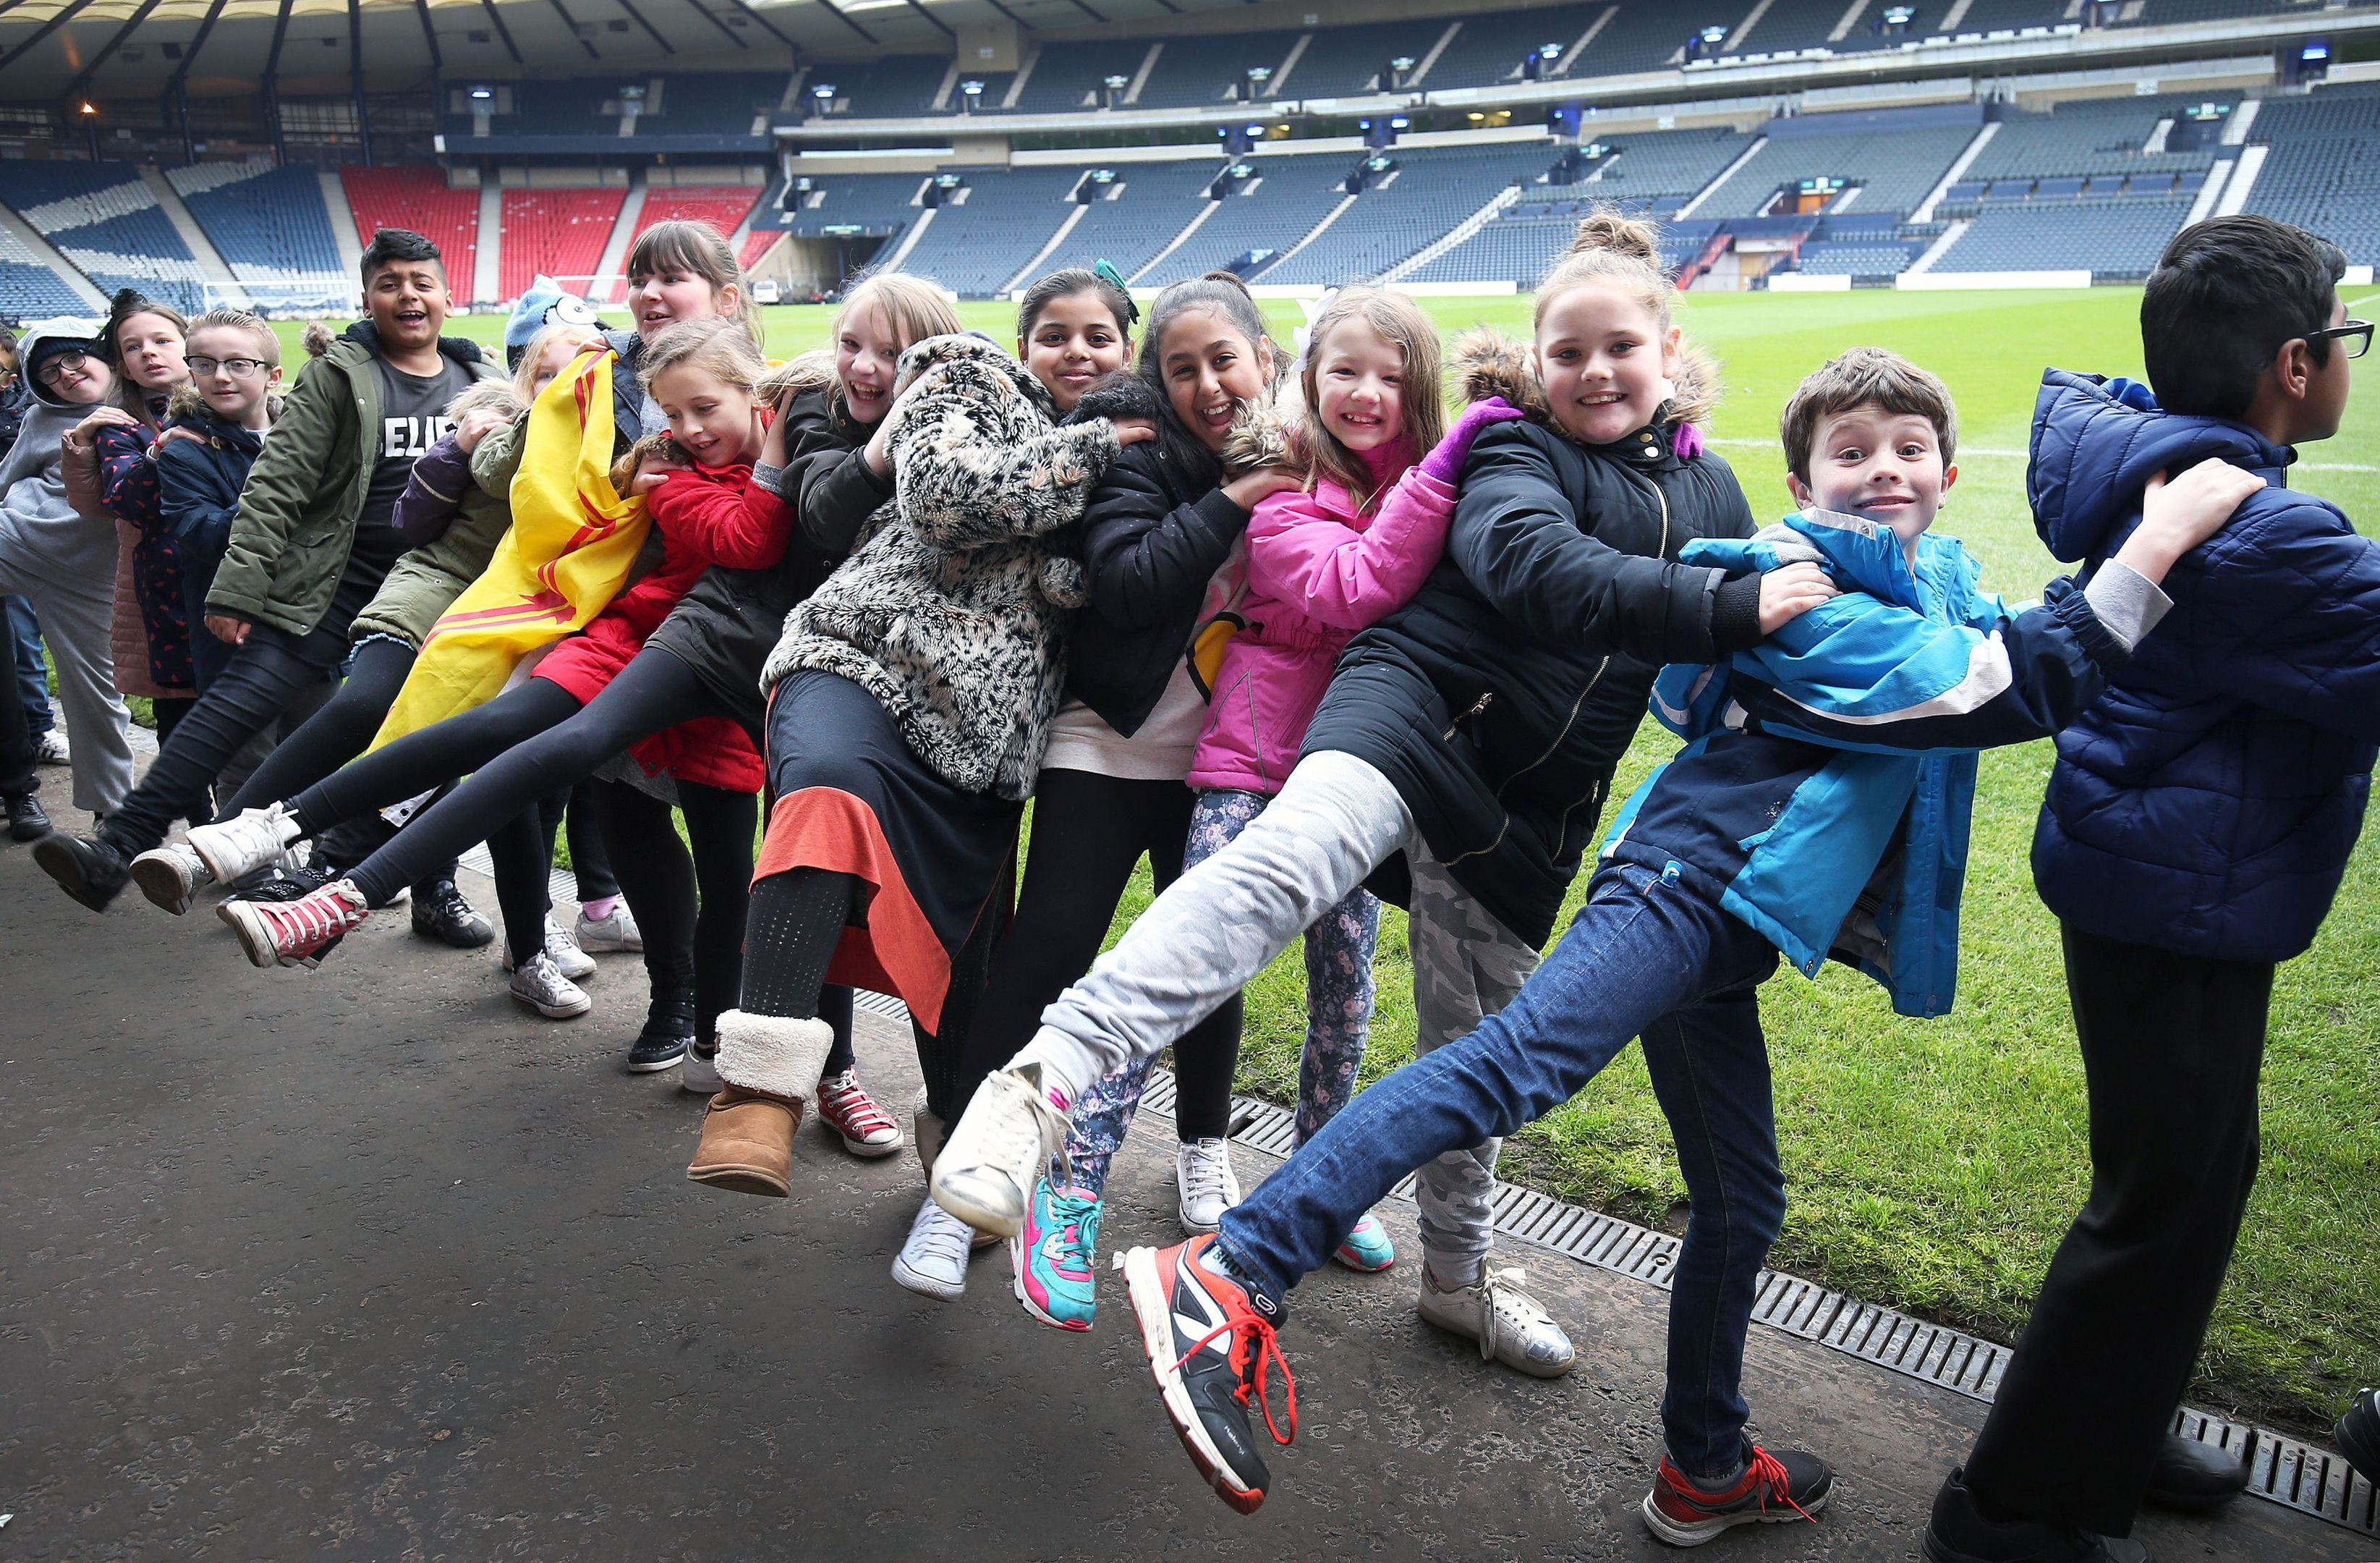 Hundreds of school children, and their teachers, join a giant conga dance at Hampden Park, Glasgow, to raise funds for Glasgow the Caring City.